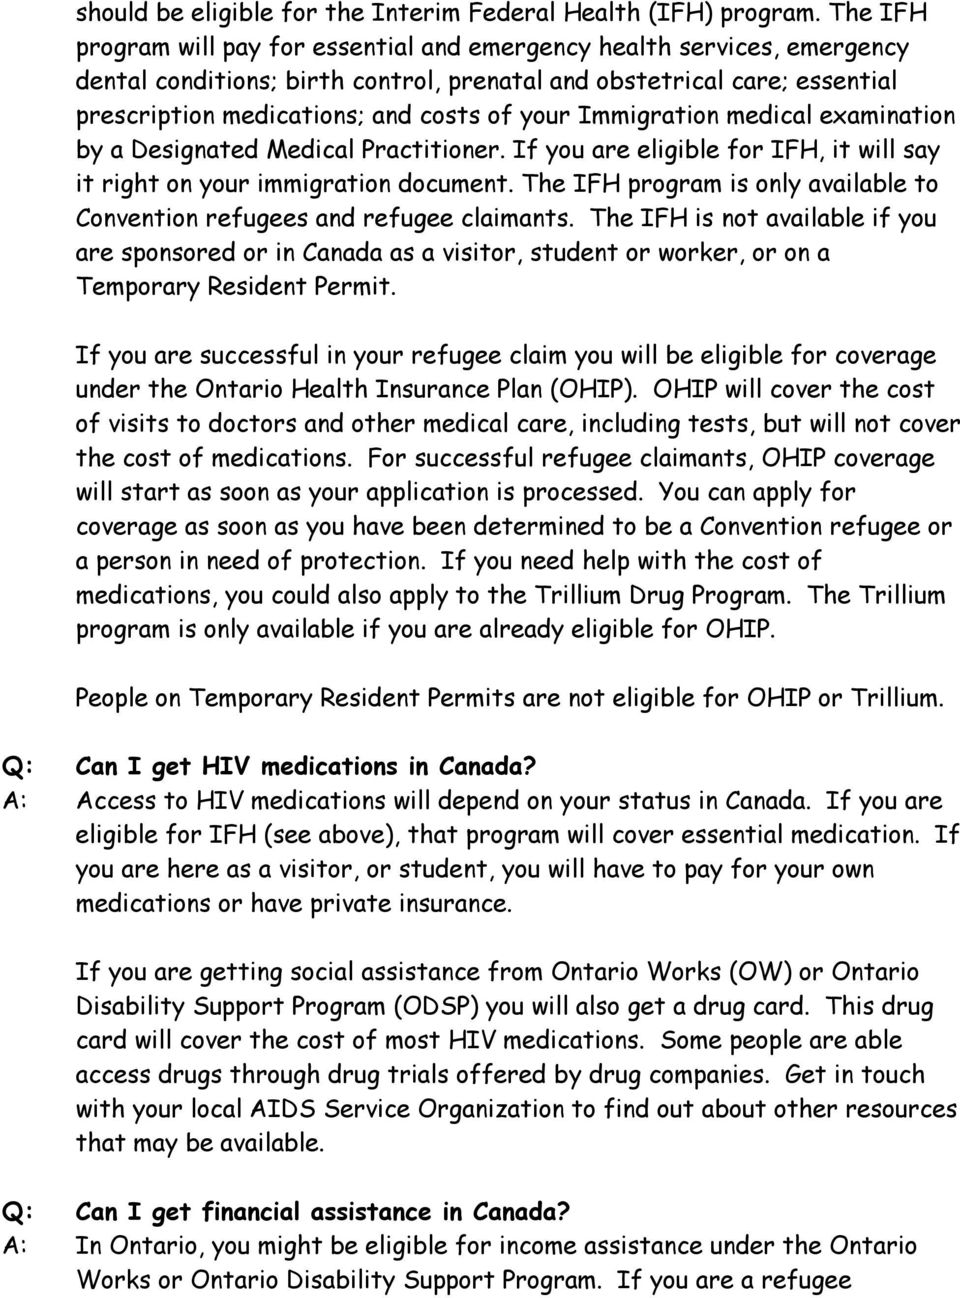 Immigration medical examination by a Designated Medical Practitioner. If you are eligible for IFH, it will say it right on your immigration document.